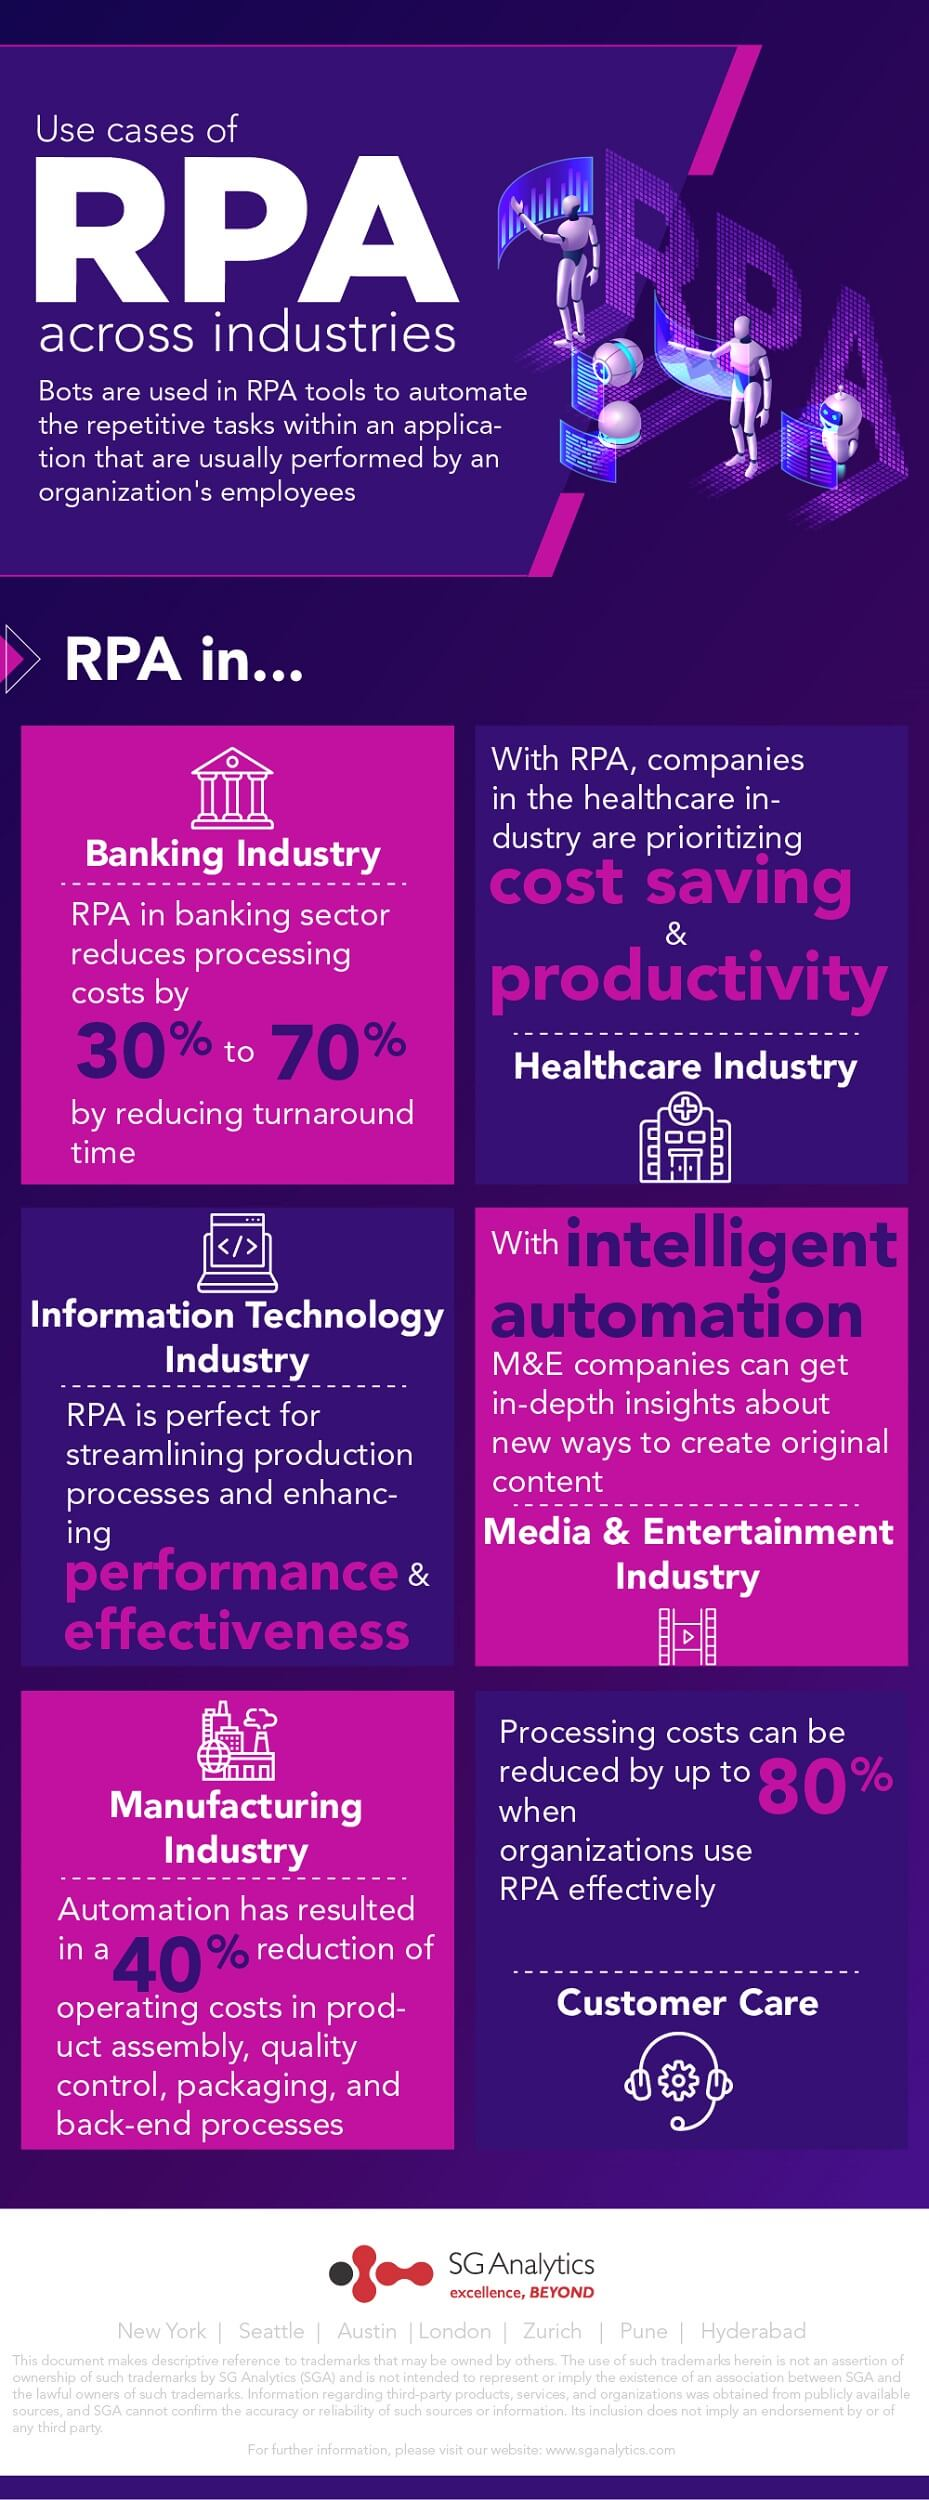 Up to 80% reduction in processing costs - Top RPA use-cases across industries